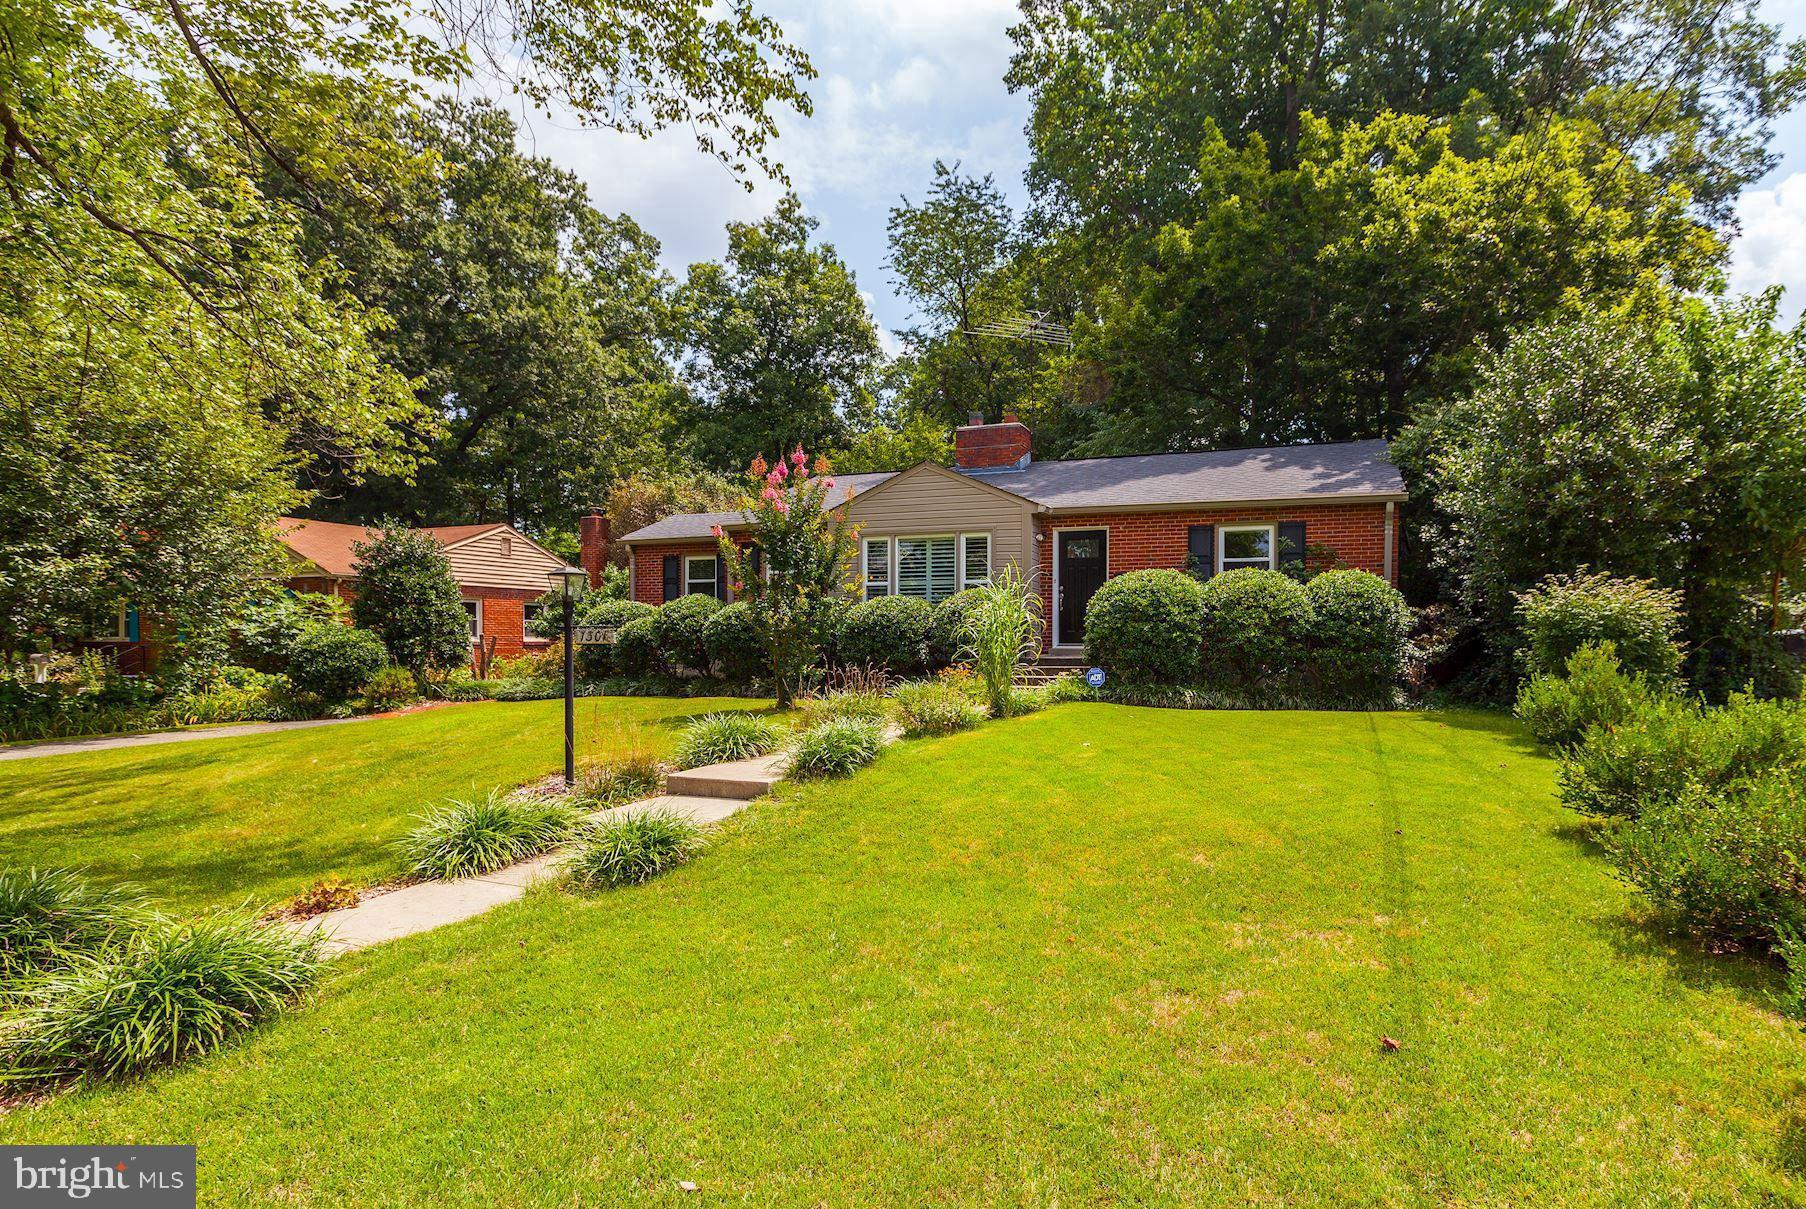 1301 RUPPERT ROAD, SILVER SPRING, MD 20903